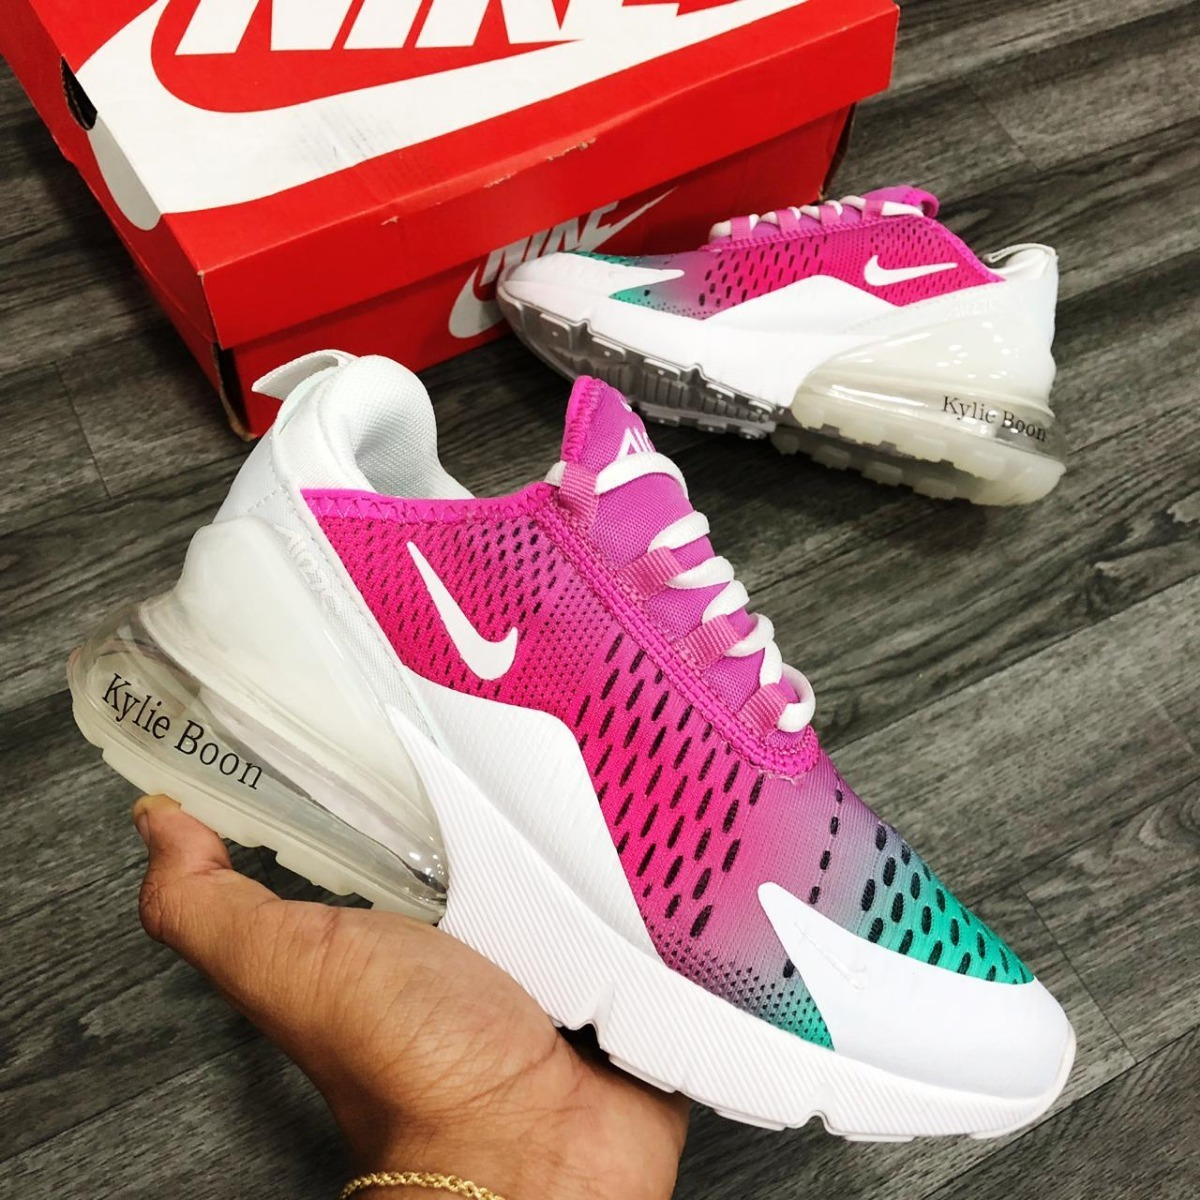 quality design a64f8 b1352 Zapatillas Tenis Nike Air Max 270 Kylie Boon Mujer Original